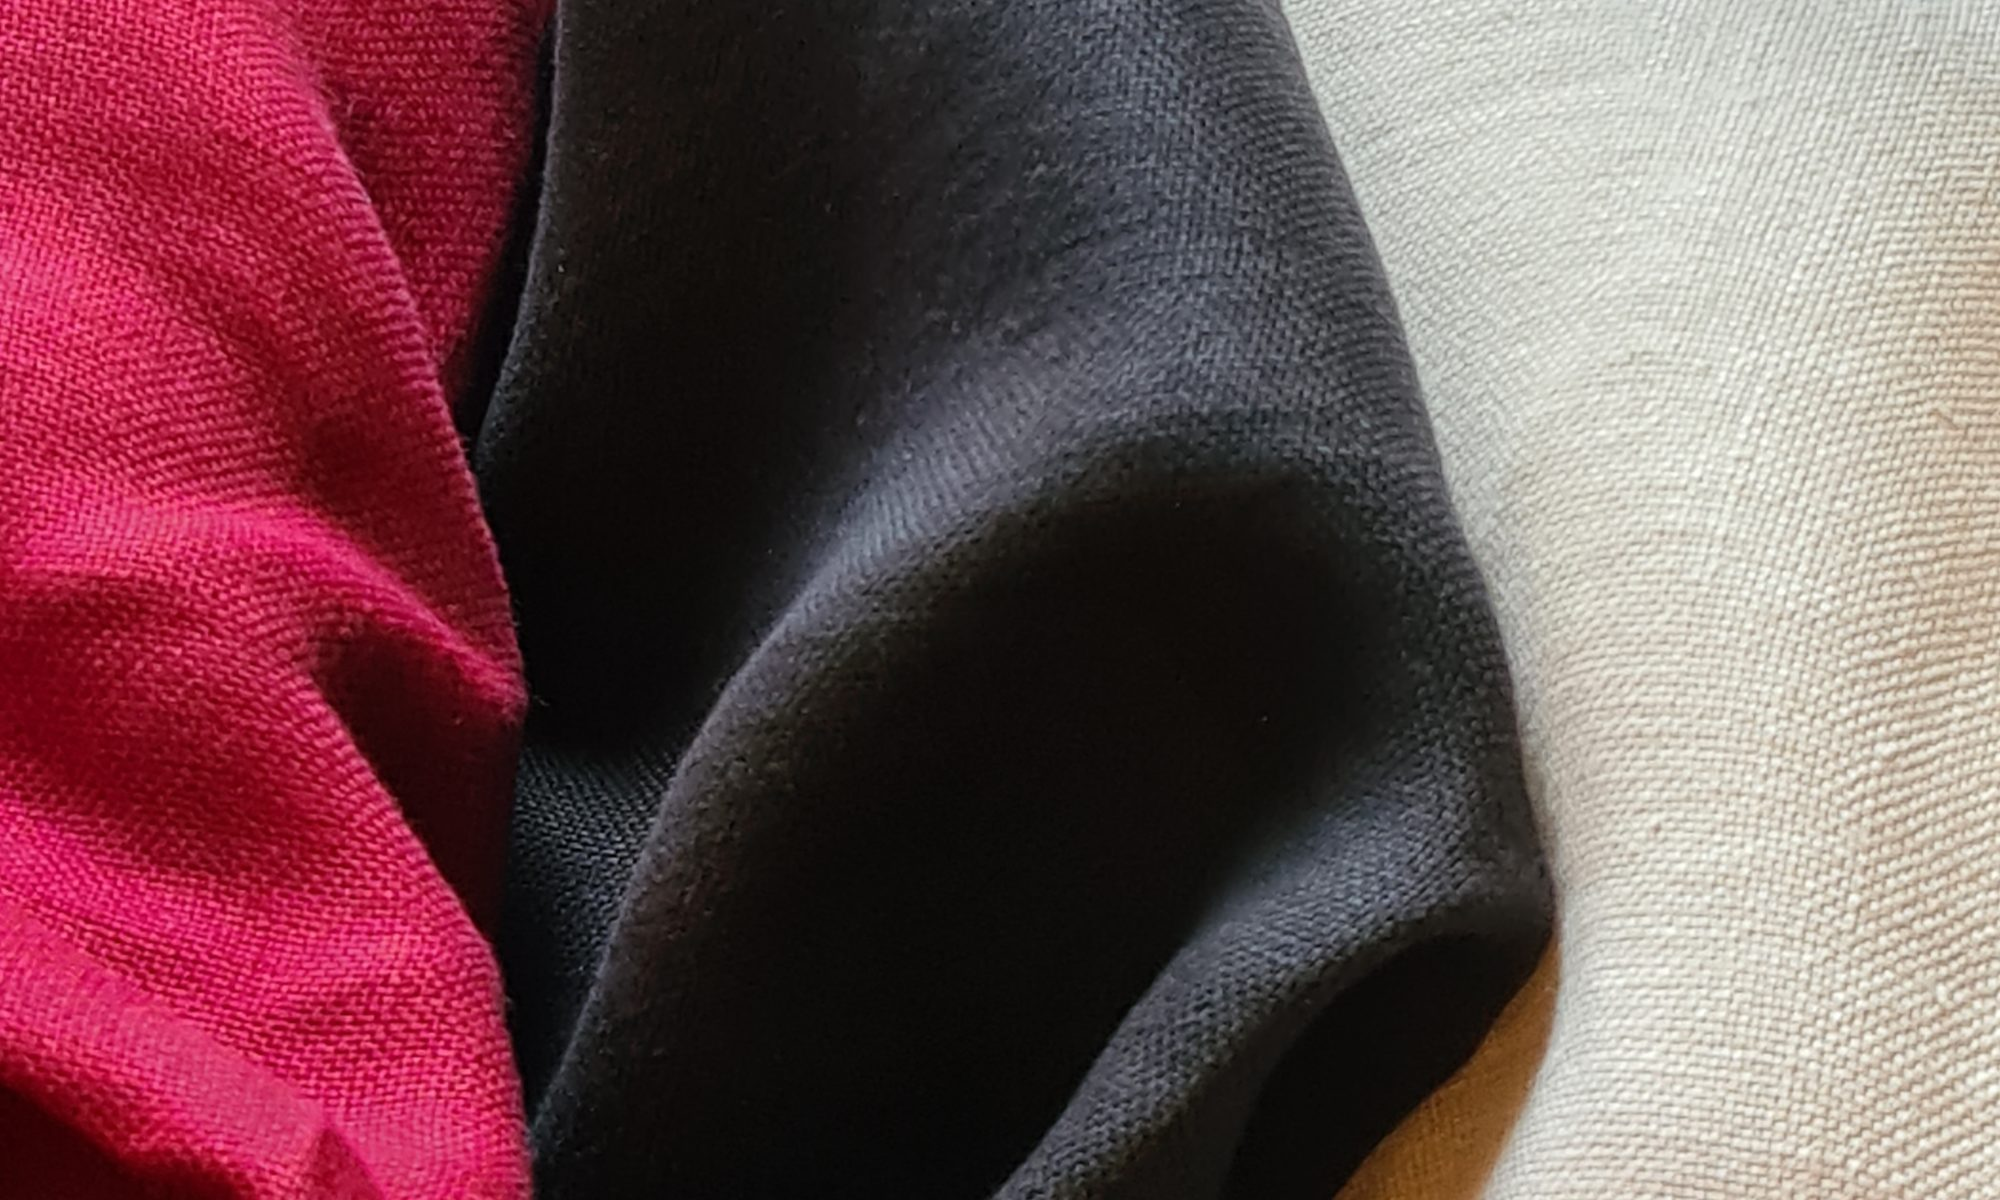 7698 pure linen piece dyed shirt pants jacket fabric WIDTH cm140 WEIGHT gr300 - gr214 square meter - COMPOSITION 100 linen - red 200mts – beige 600 mts – black 100mts